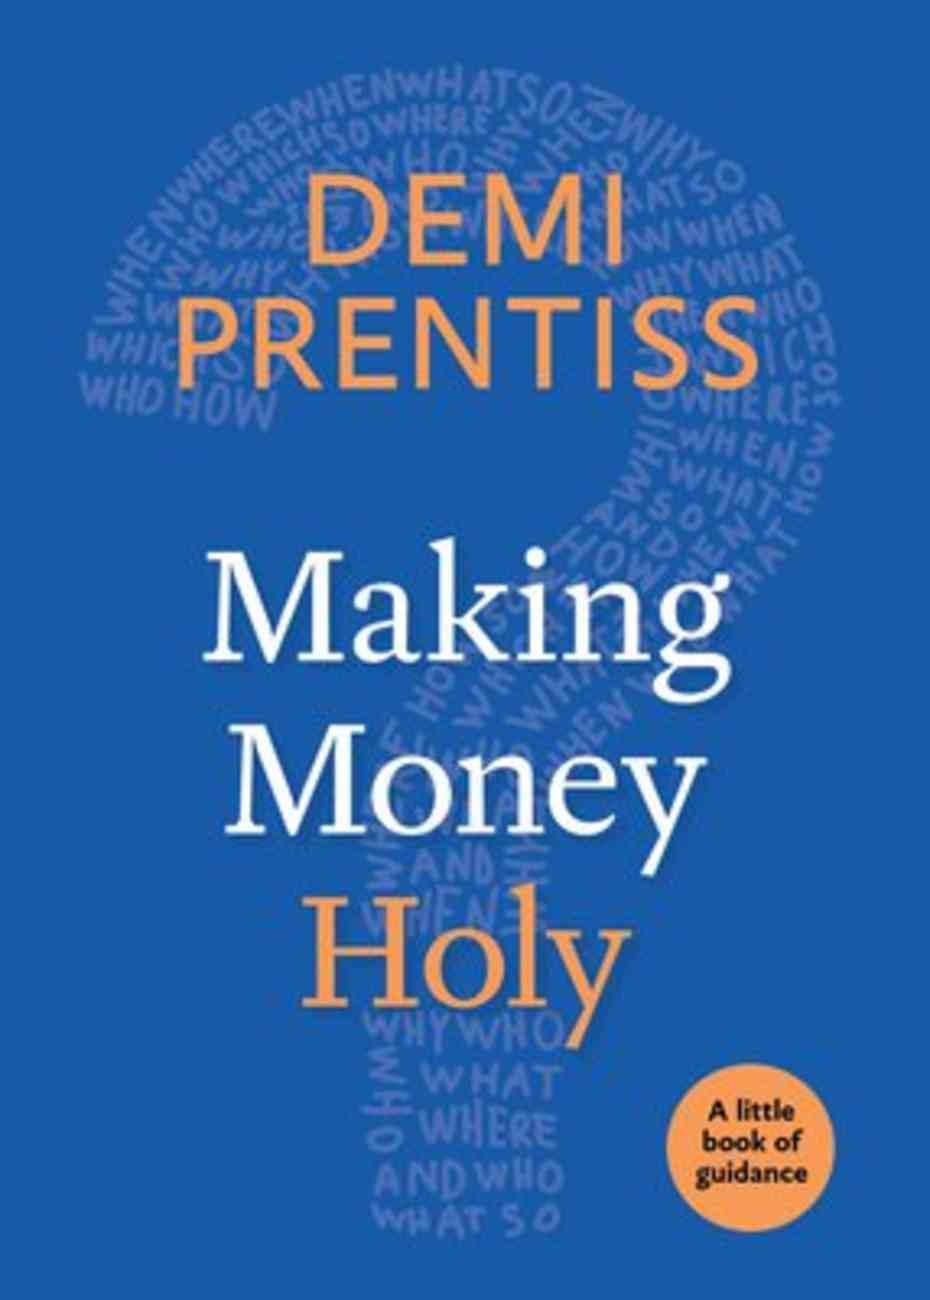 Making Money Holy (Little Book Of Guidance Series) Paperback